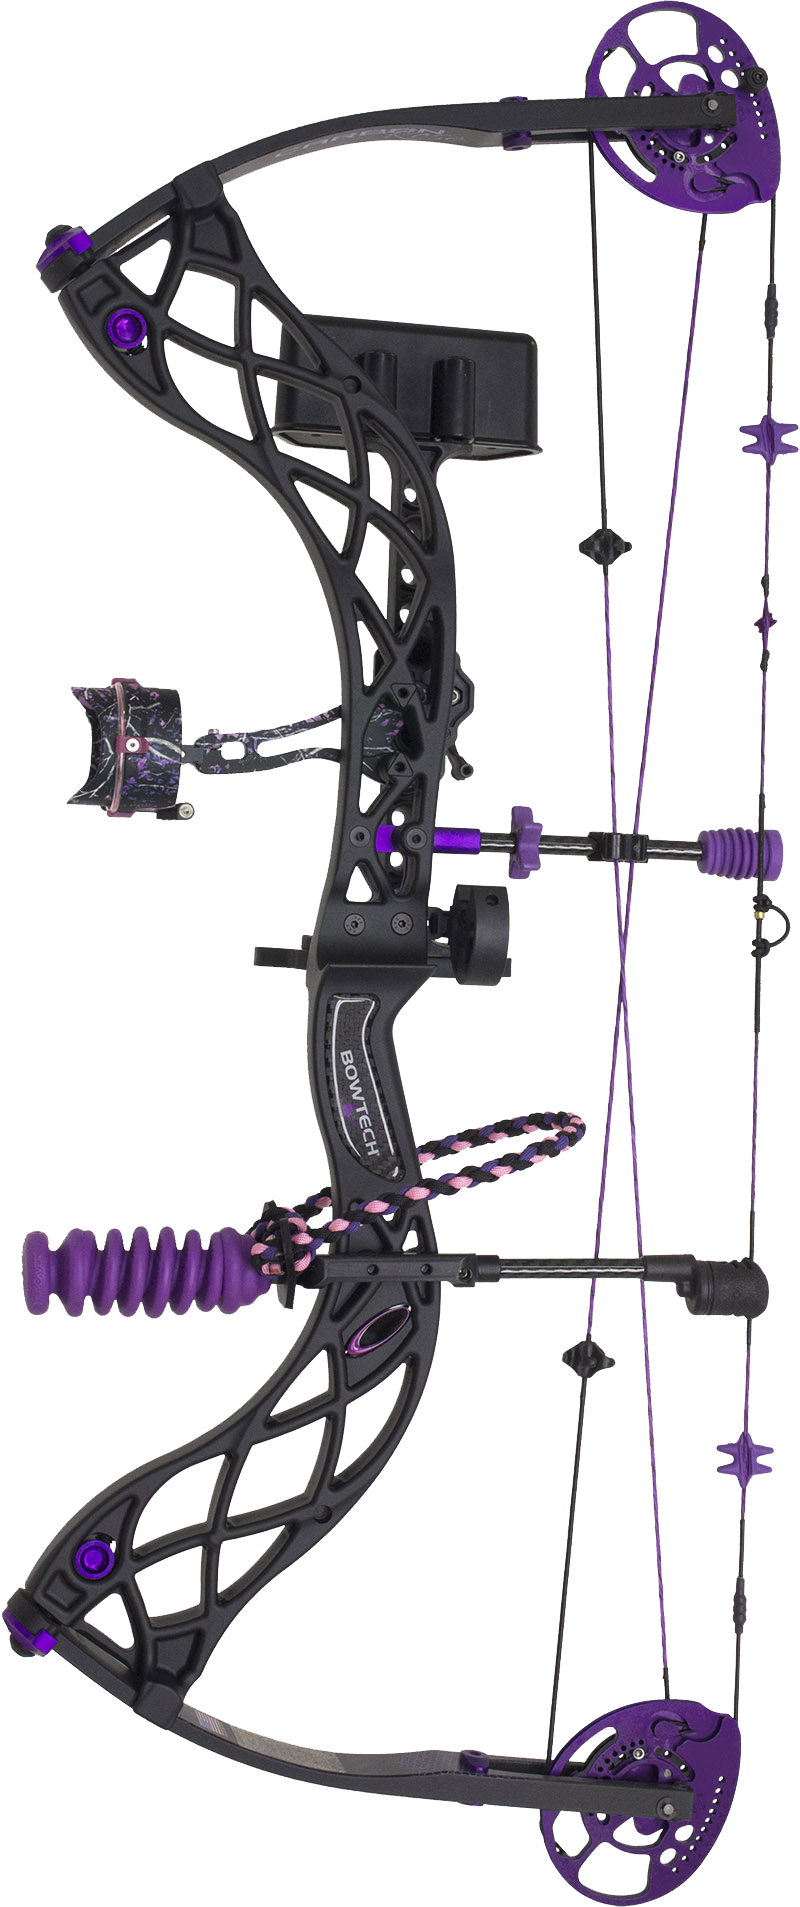 Carbon Rose purple compound bow for sale